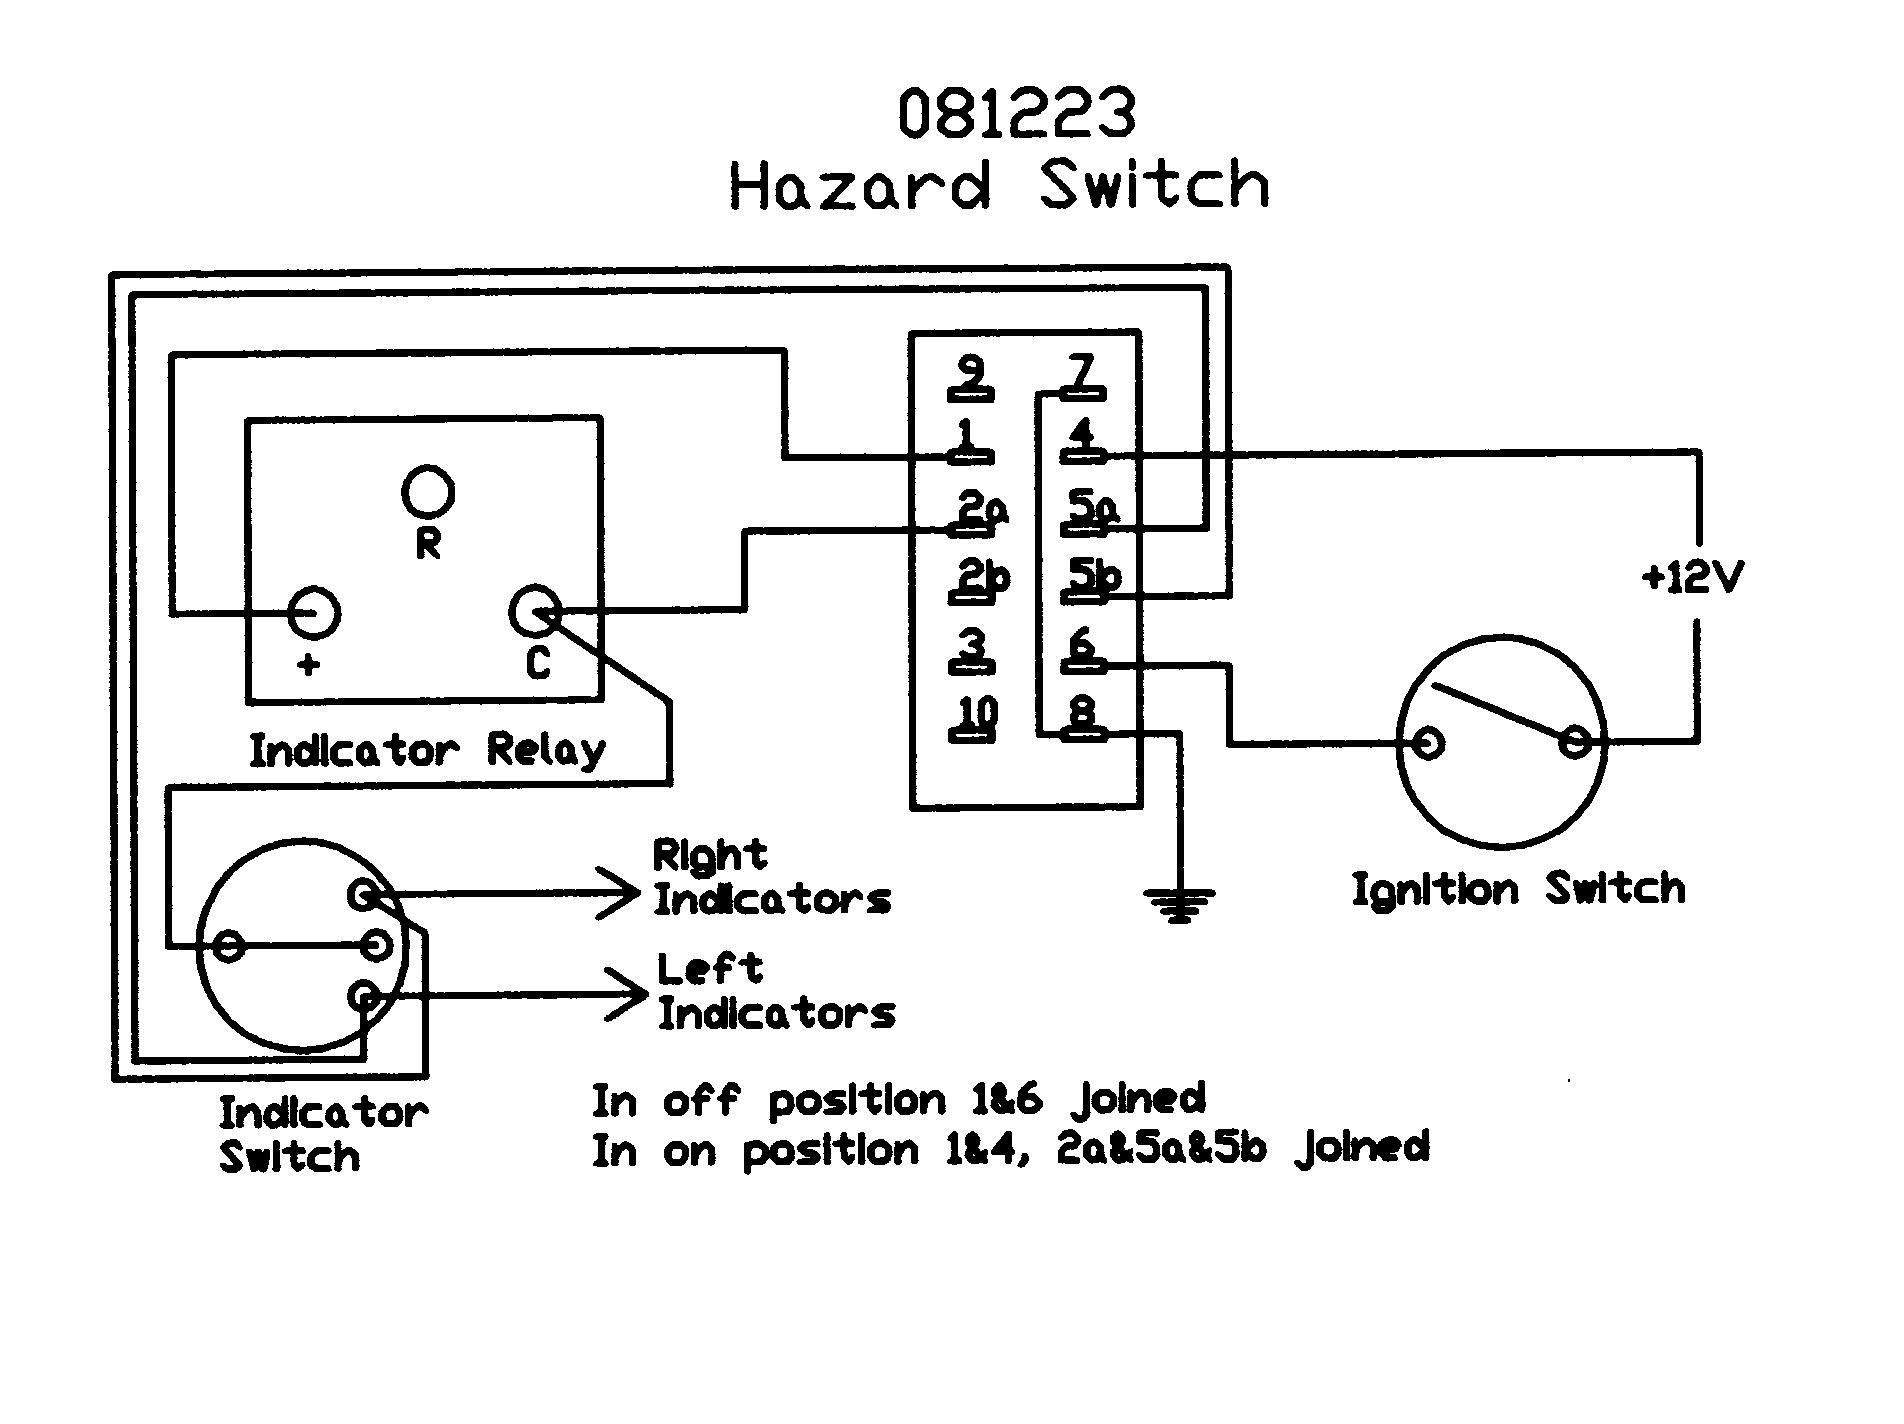 Hazard Switch Wiring Diagram Online Land Rover Ffr Light Schematic Name